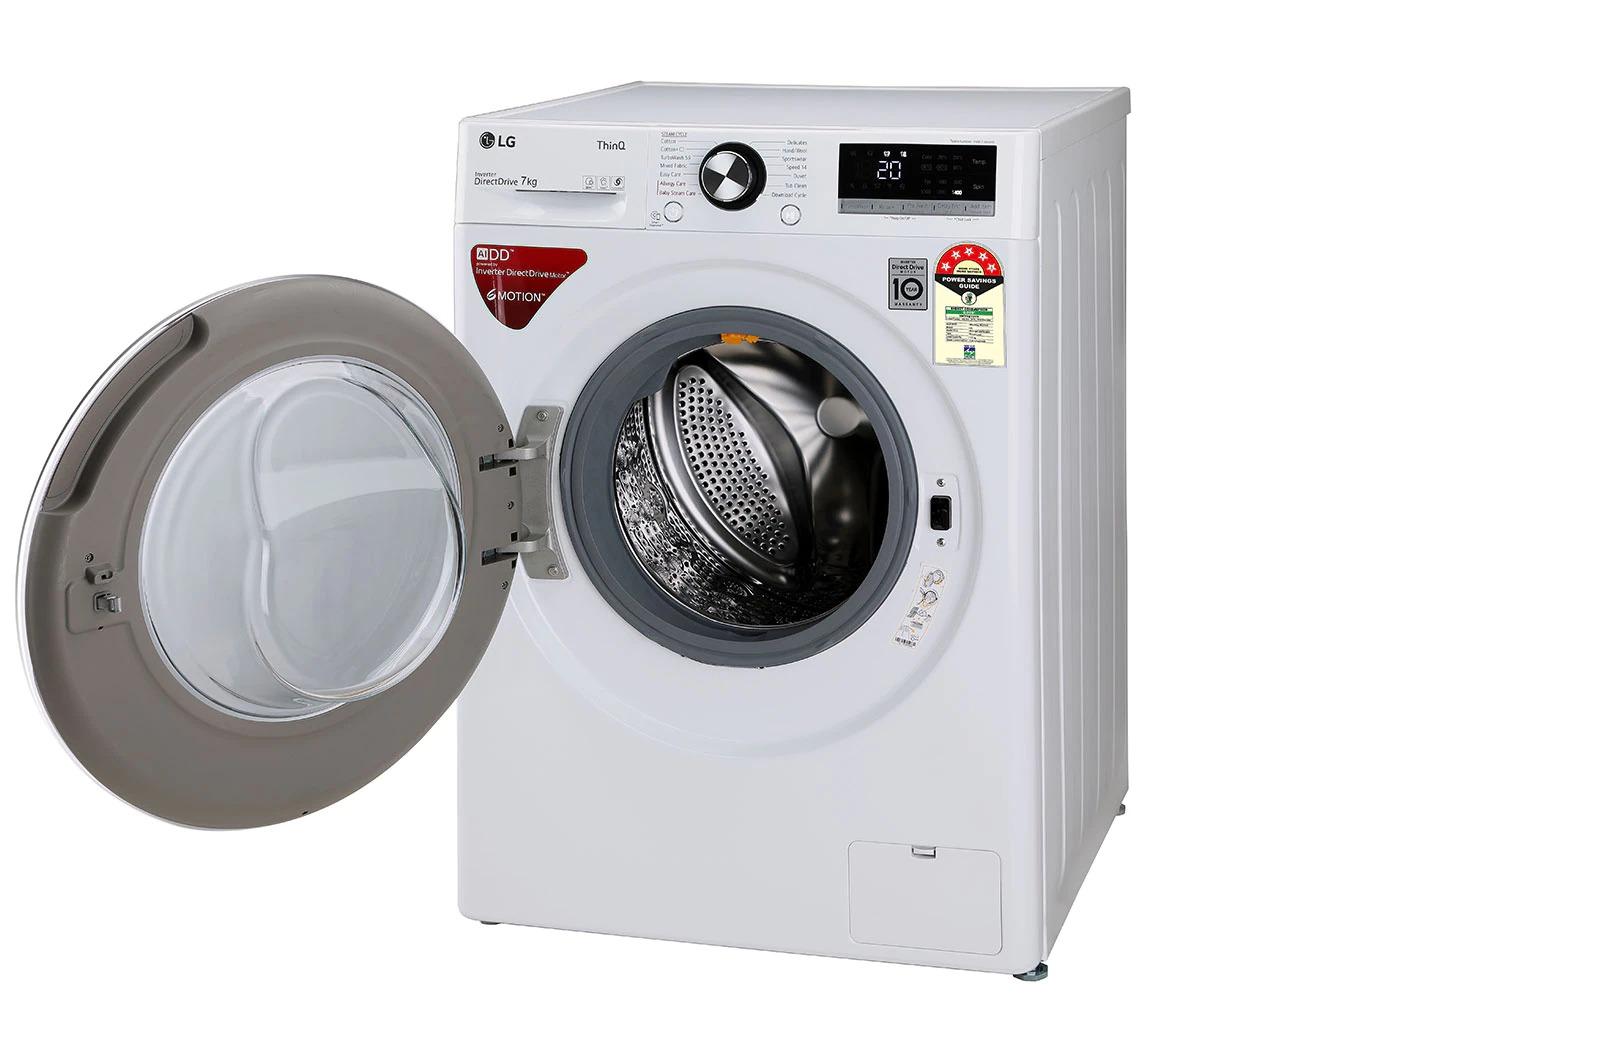 LG (FHV1207ZWW) 7.0Kg, AI Direct Drive™ Washer With Steam™ & TurboWash™